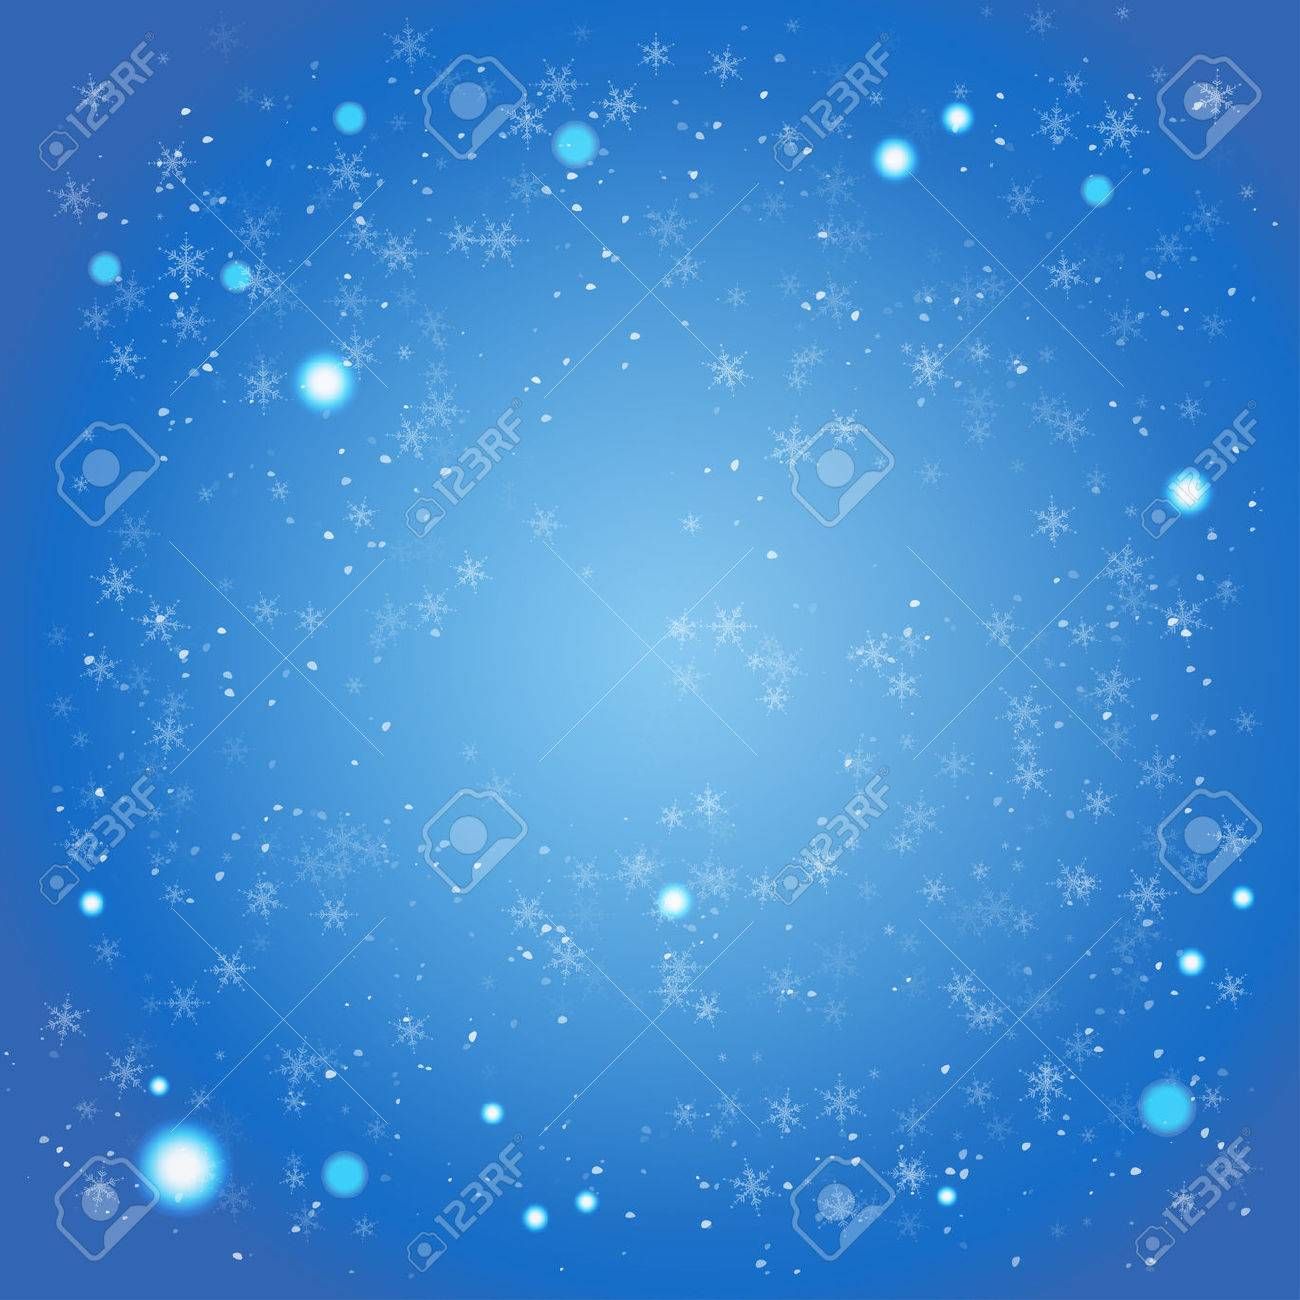 Winter blue background with space for text - 29870359